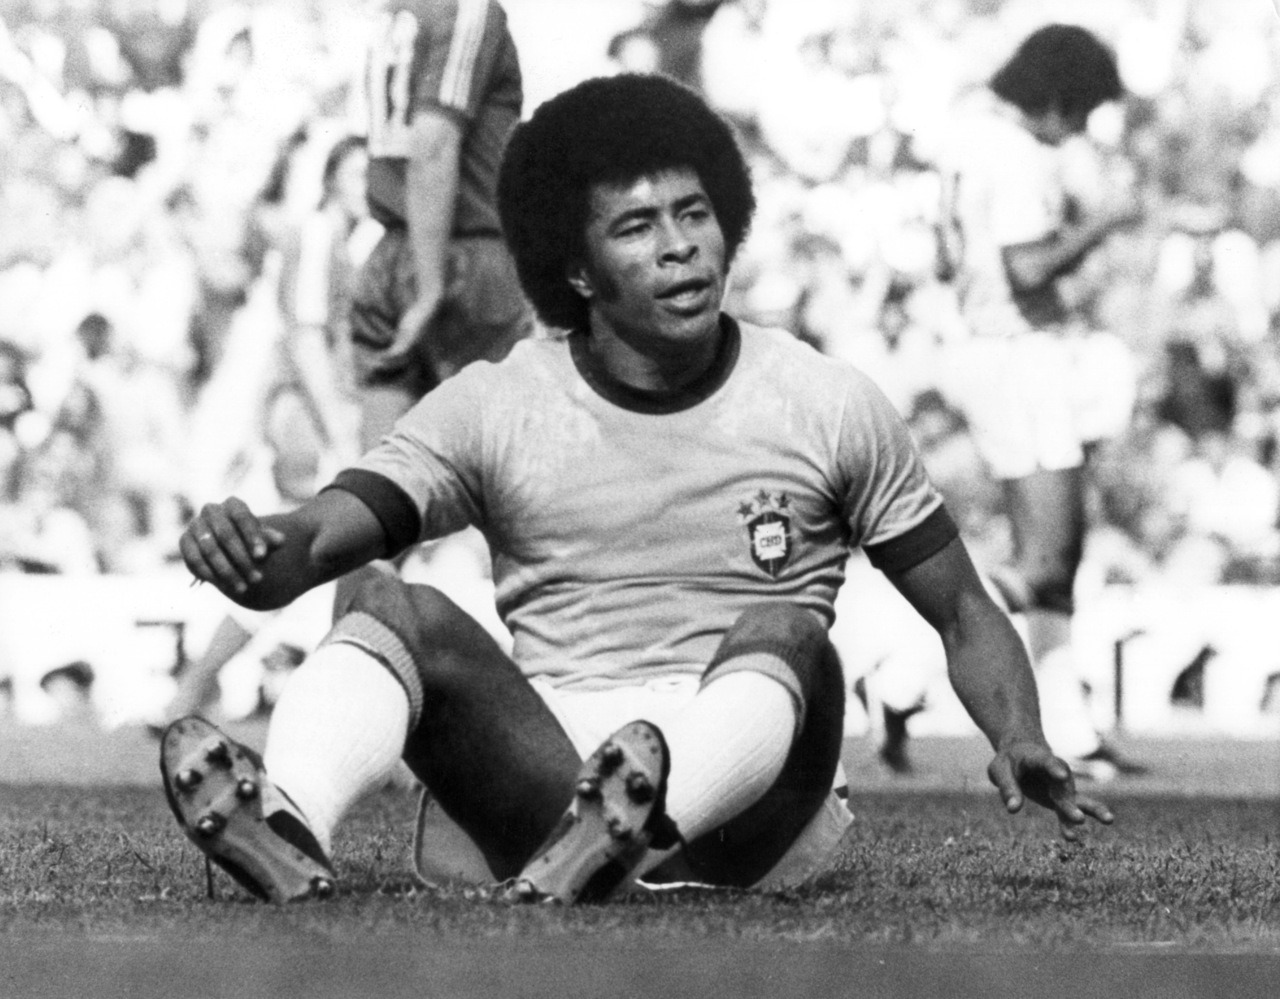 interleaning:  Jairzinho, World Cup 1974.  I wonder what's got him miffed…